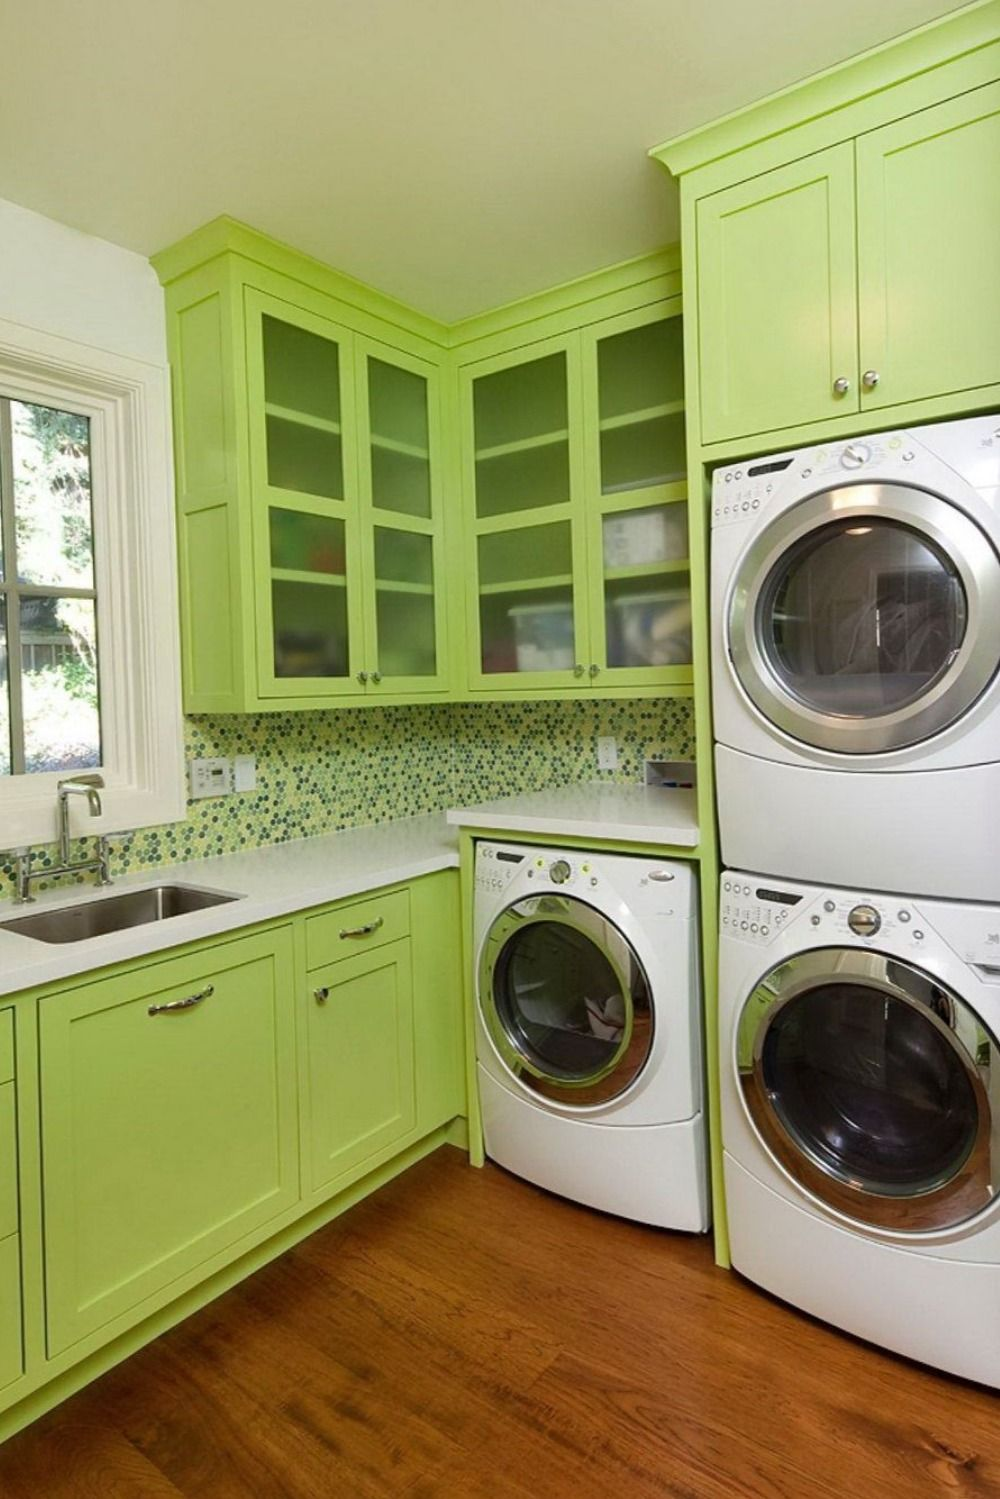 Smart Ideas To Make Small Laundry Rooms Efficient On 2020 In 2020